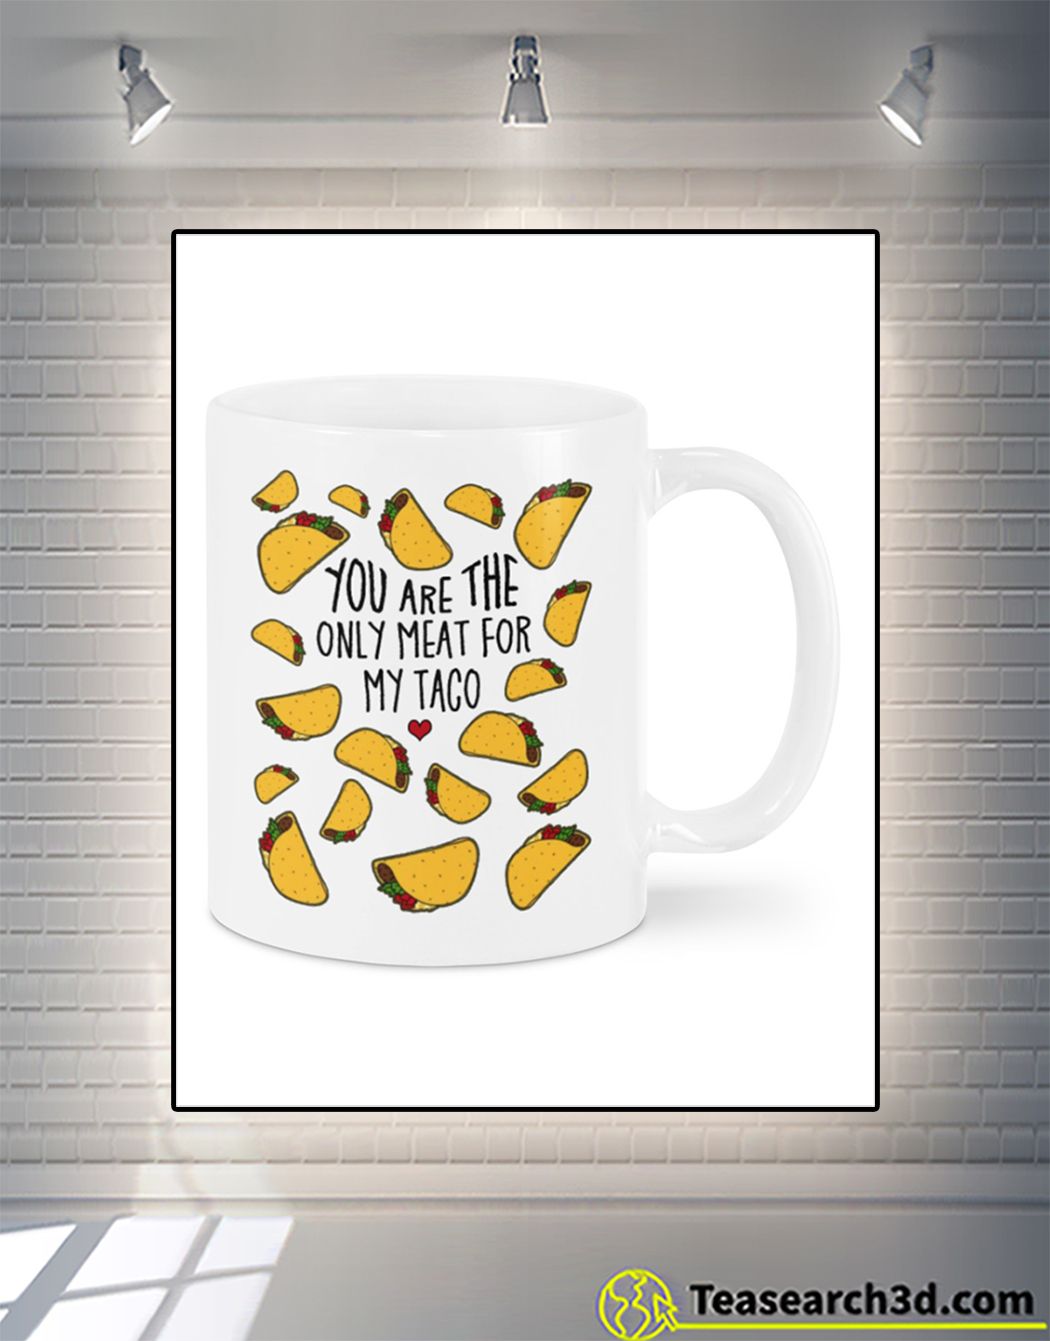 You are the only meat for my taco mug front